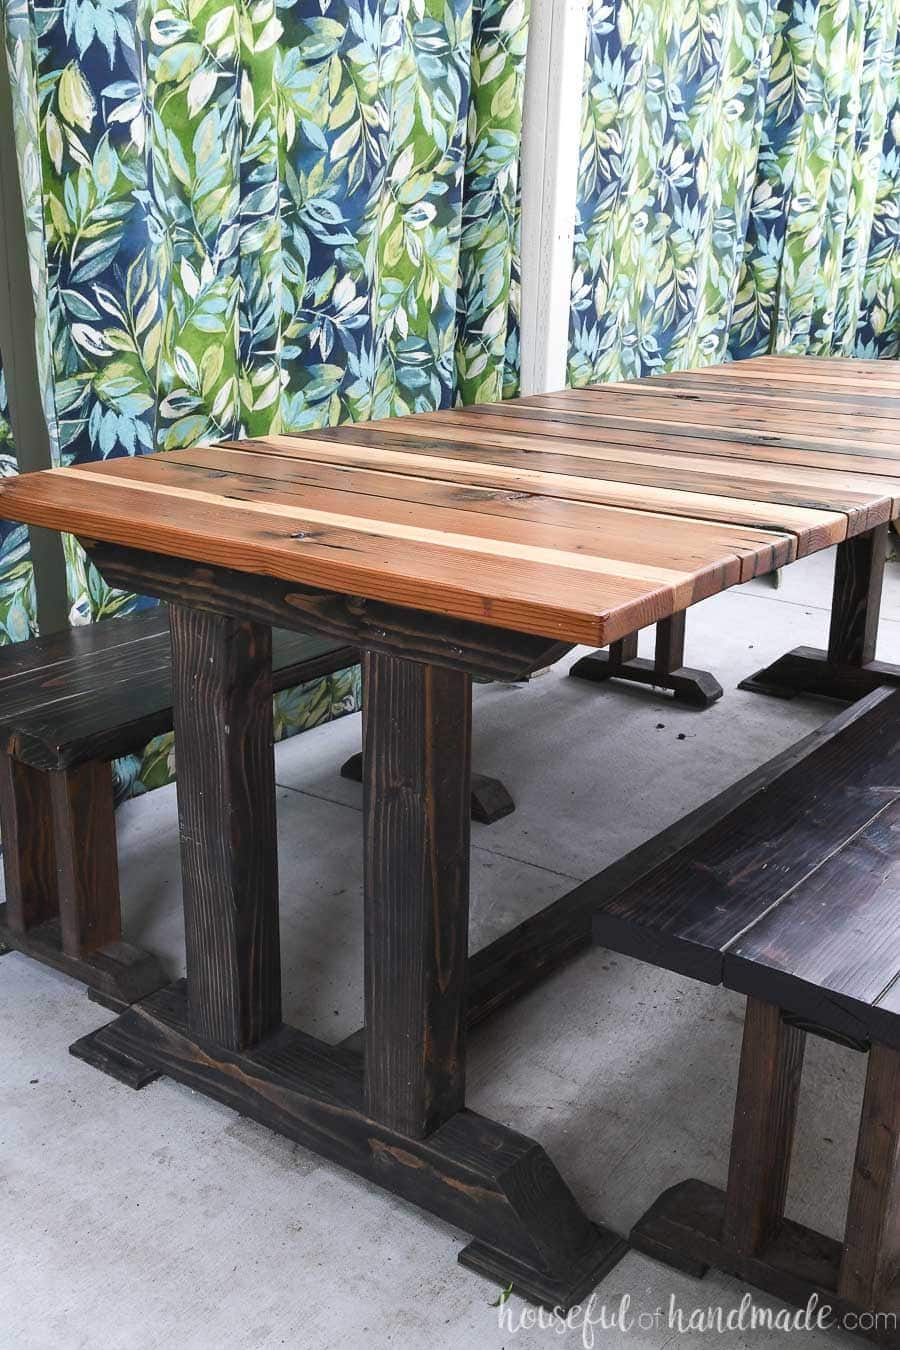 Beautiful wood table build from the picnic table plans on a patio.